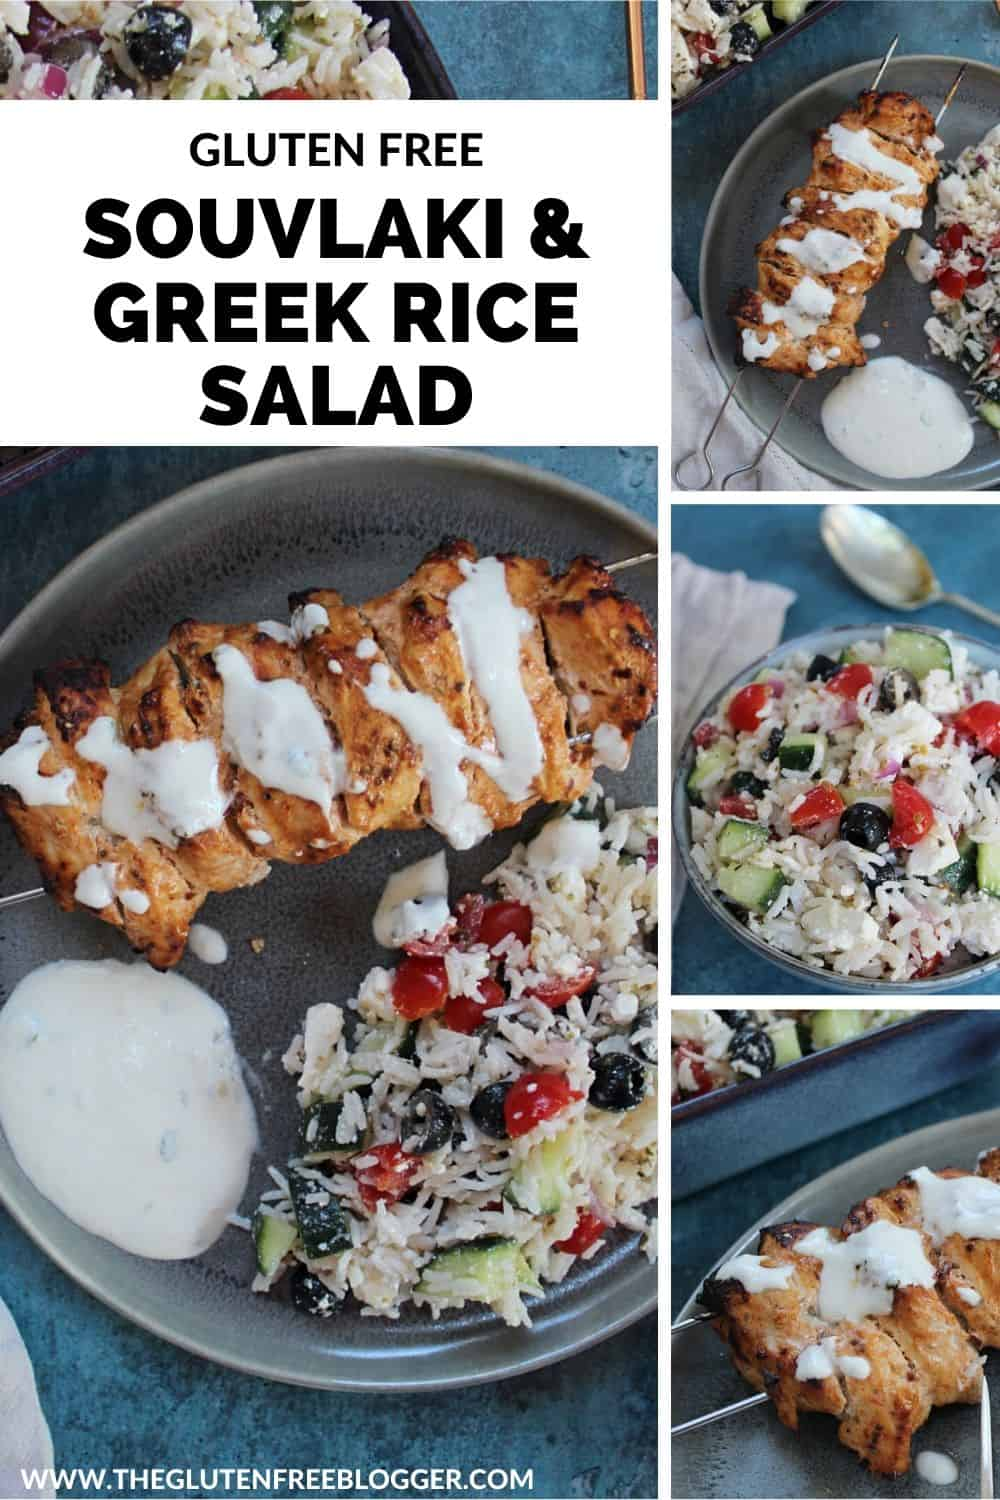 gluten free chicken kebabs with greek rice salad and garlic yoghurt dip (souvlaki)